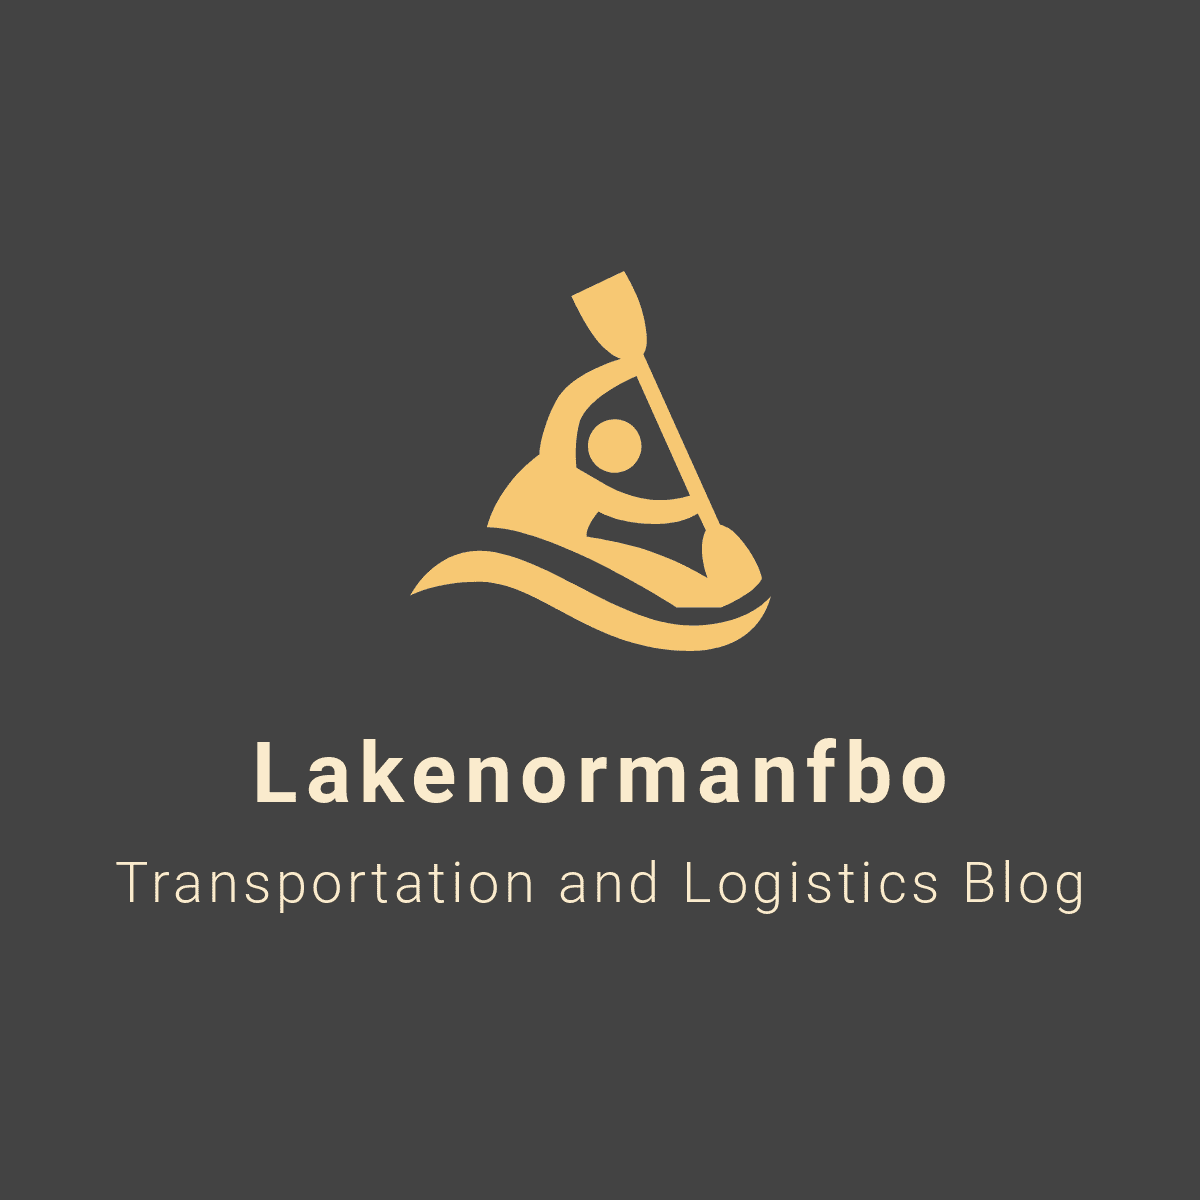 Lakenormanfbo